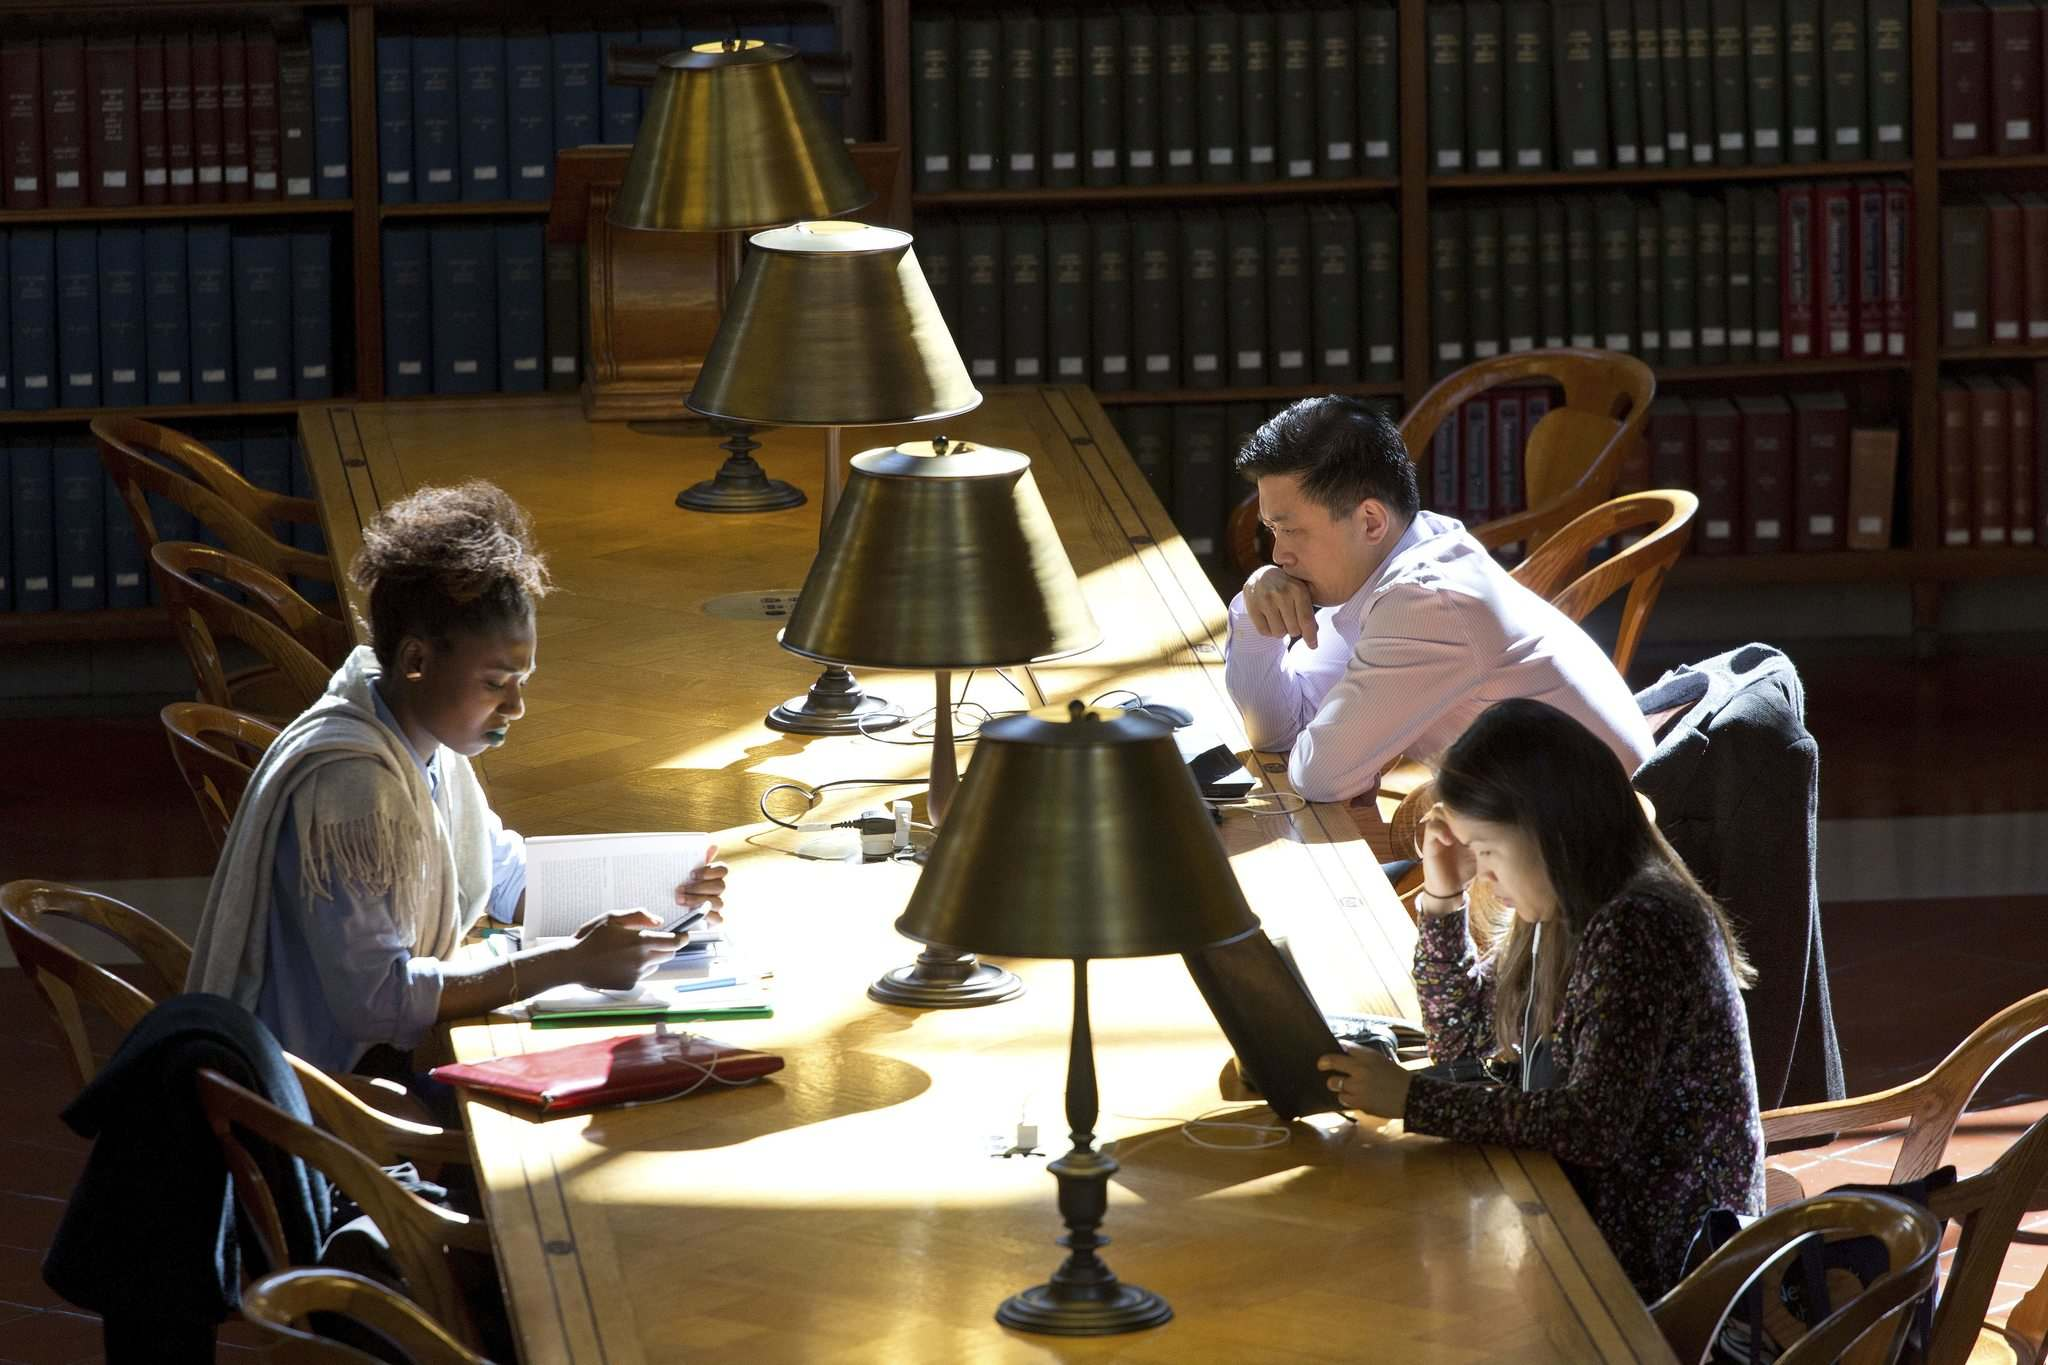 Mark Lennihan / The Associated Press files</p><p>People read at a table as sunlight falls in the Rose Main Reading Room of the New York Public Library</p>